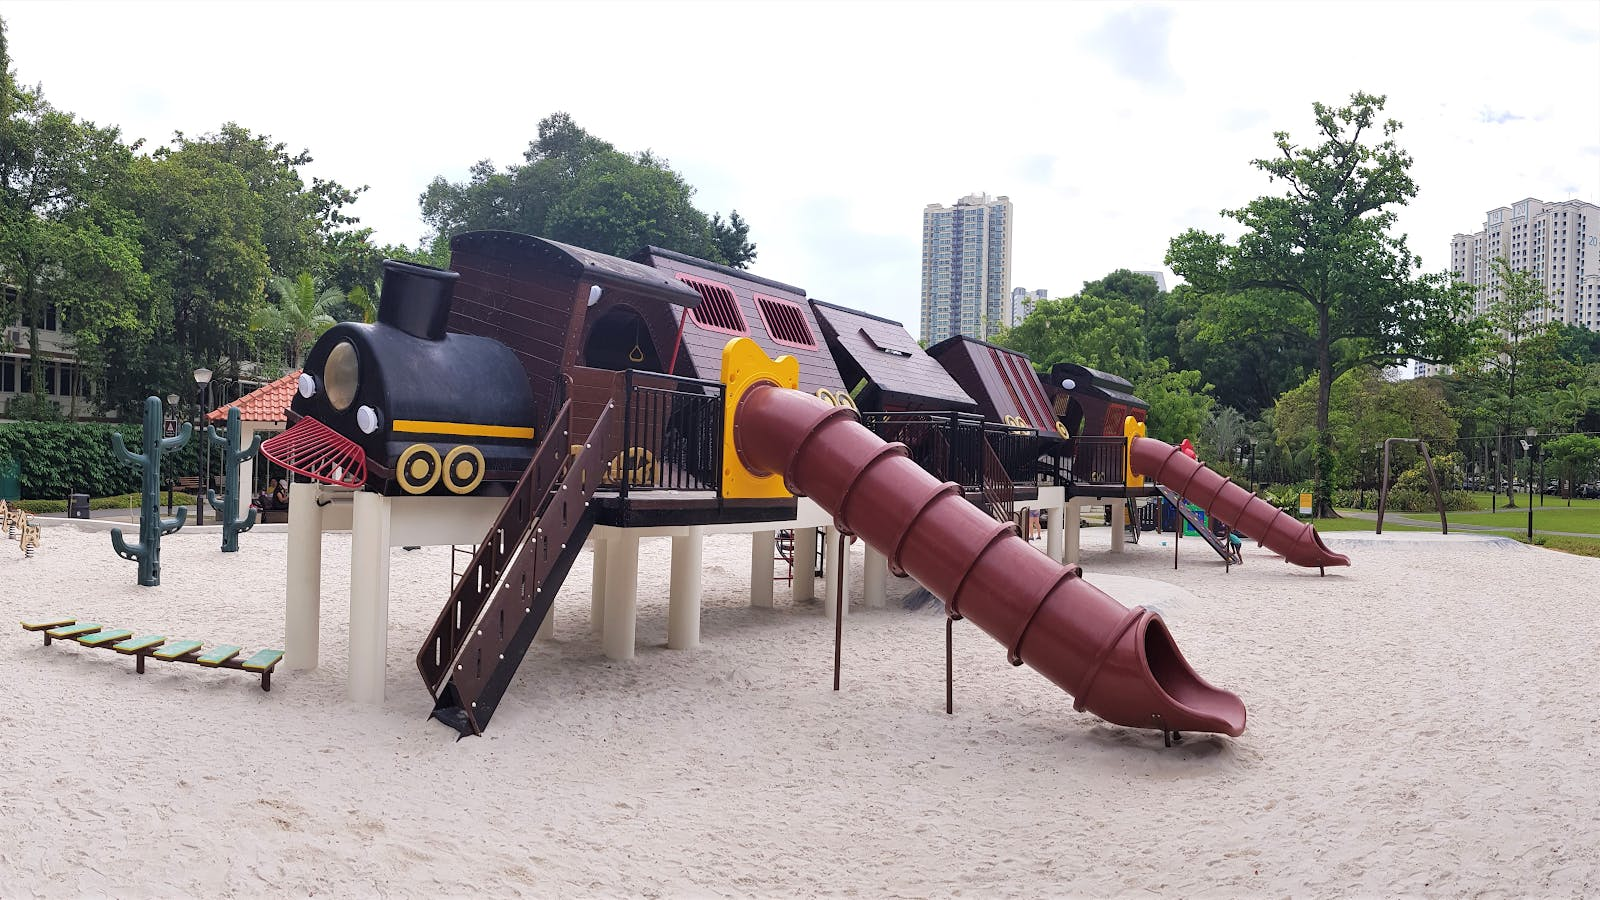 Train playground at Tiong Bahru Park